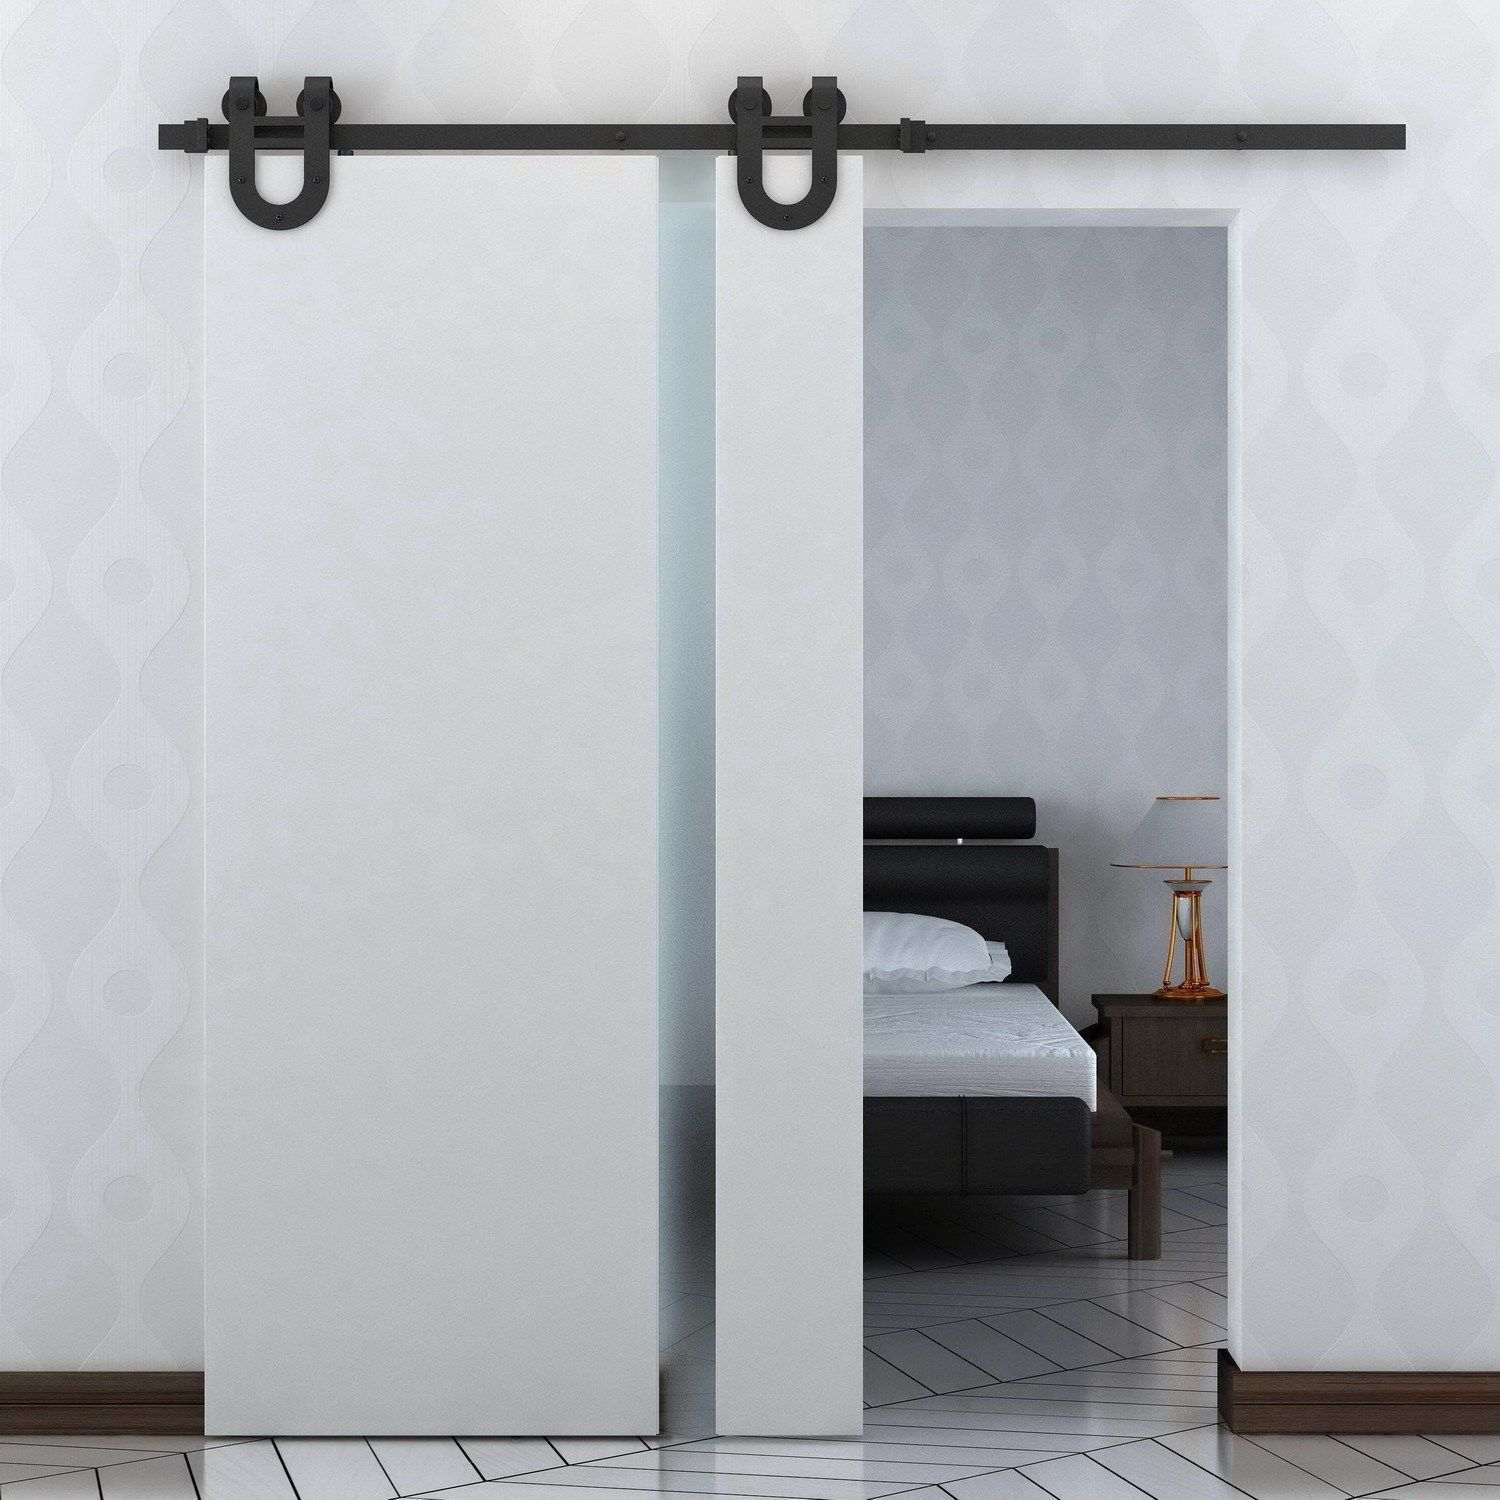 Homcom Rustic 6 Interior Sliding Barn Door Kit Hardware Set